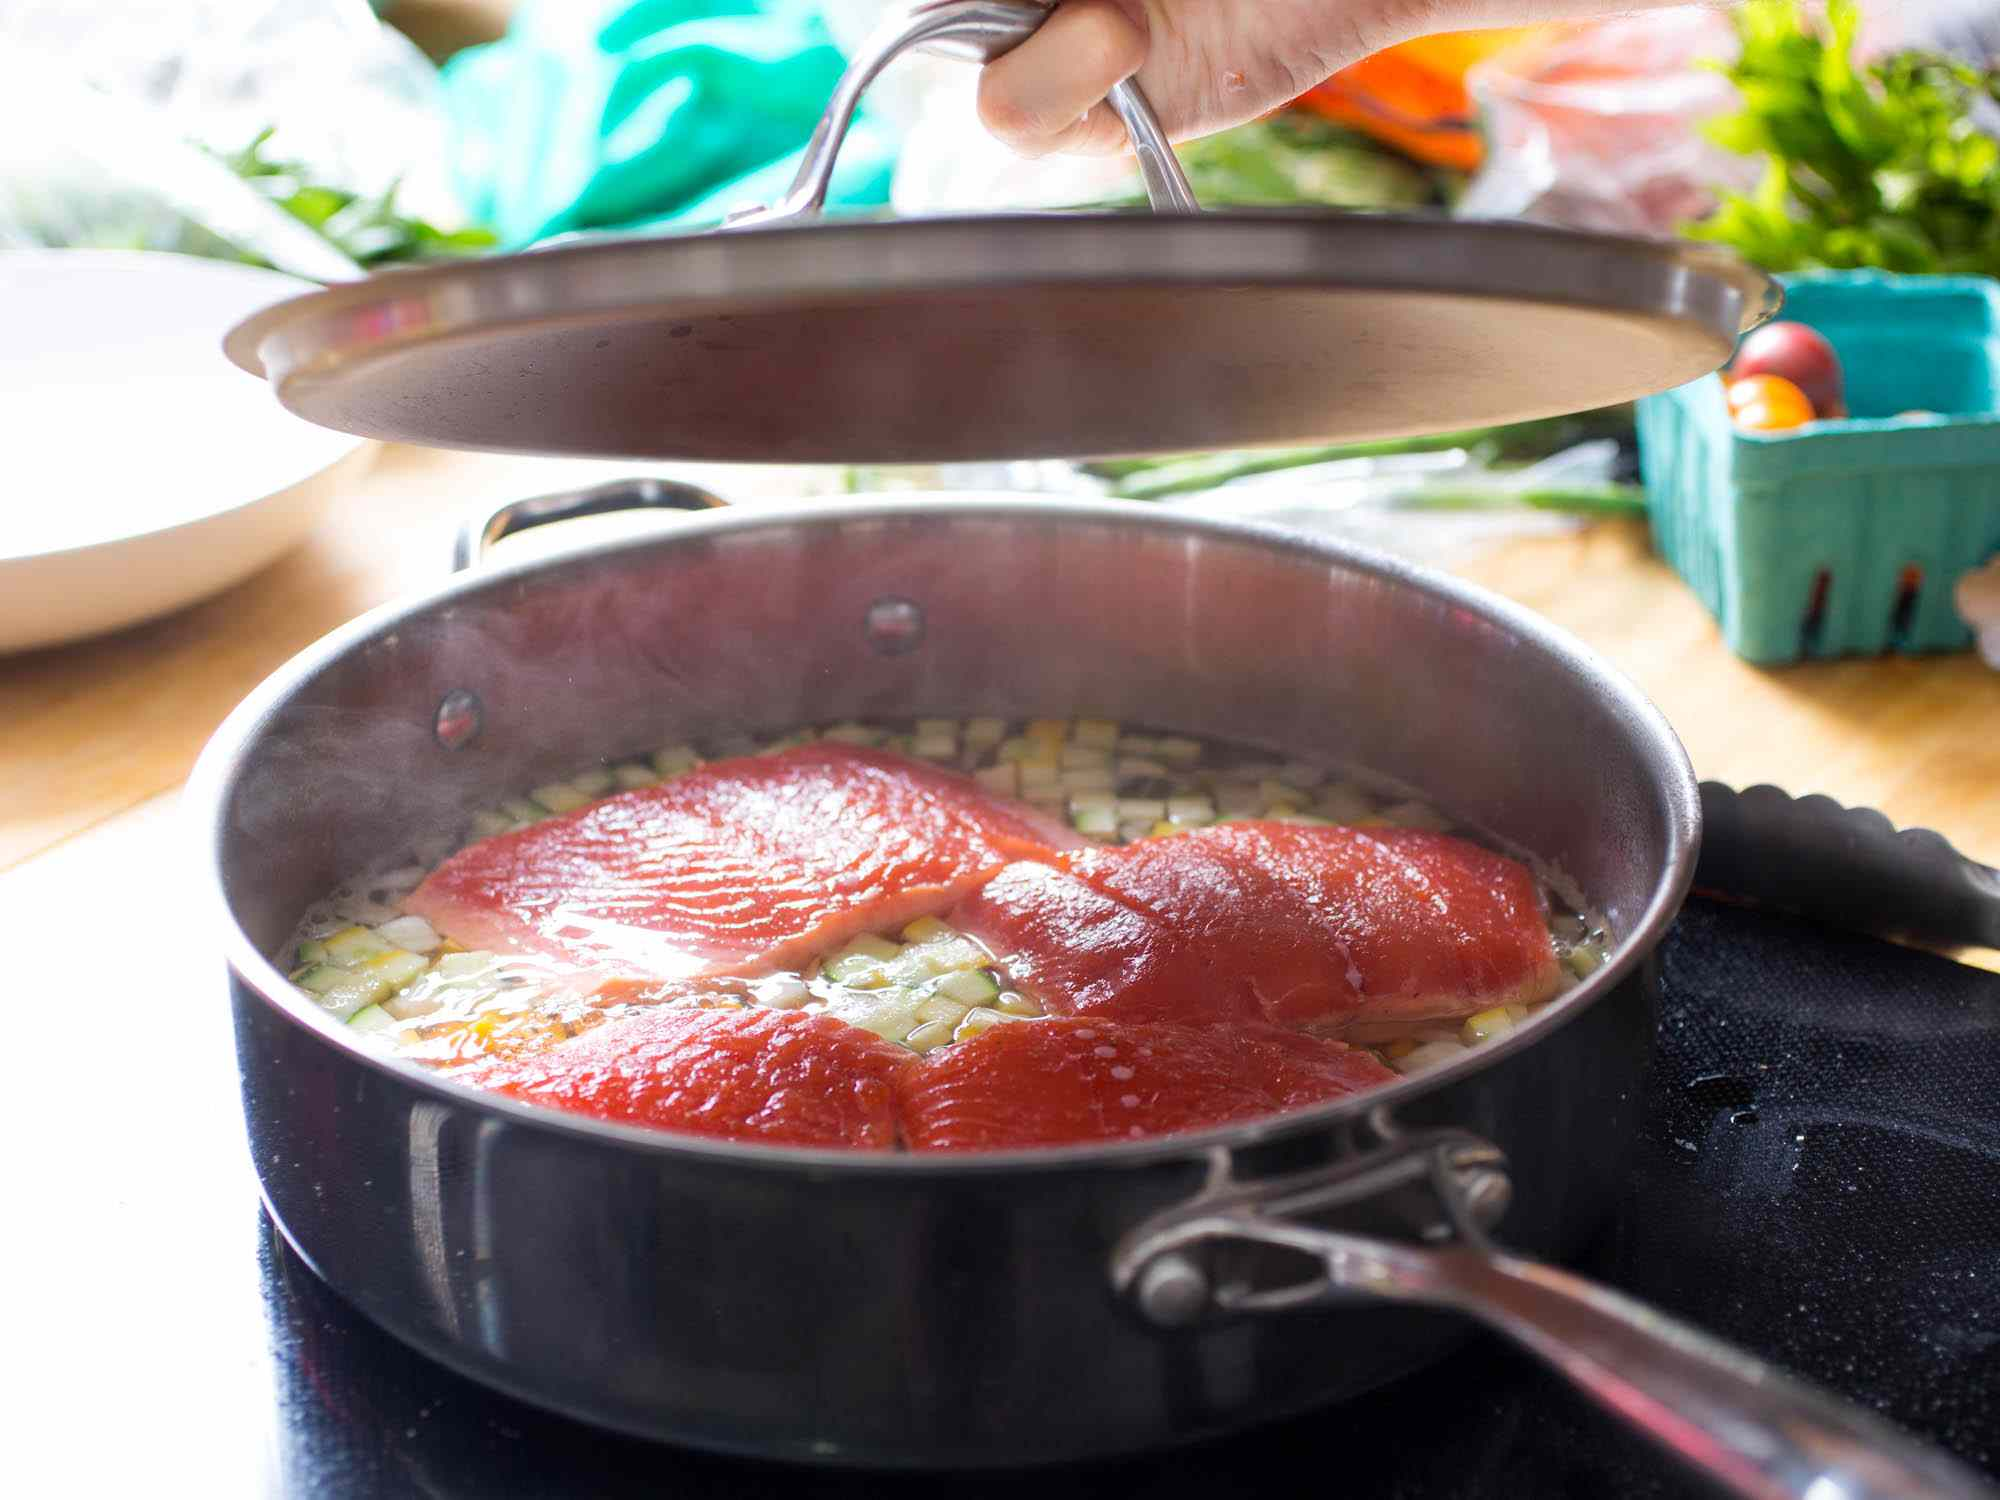 Four salmon fillets in a deep-sided skillet being cooked a la nage.